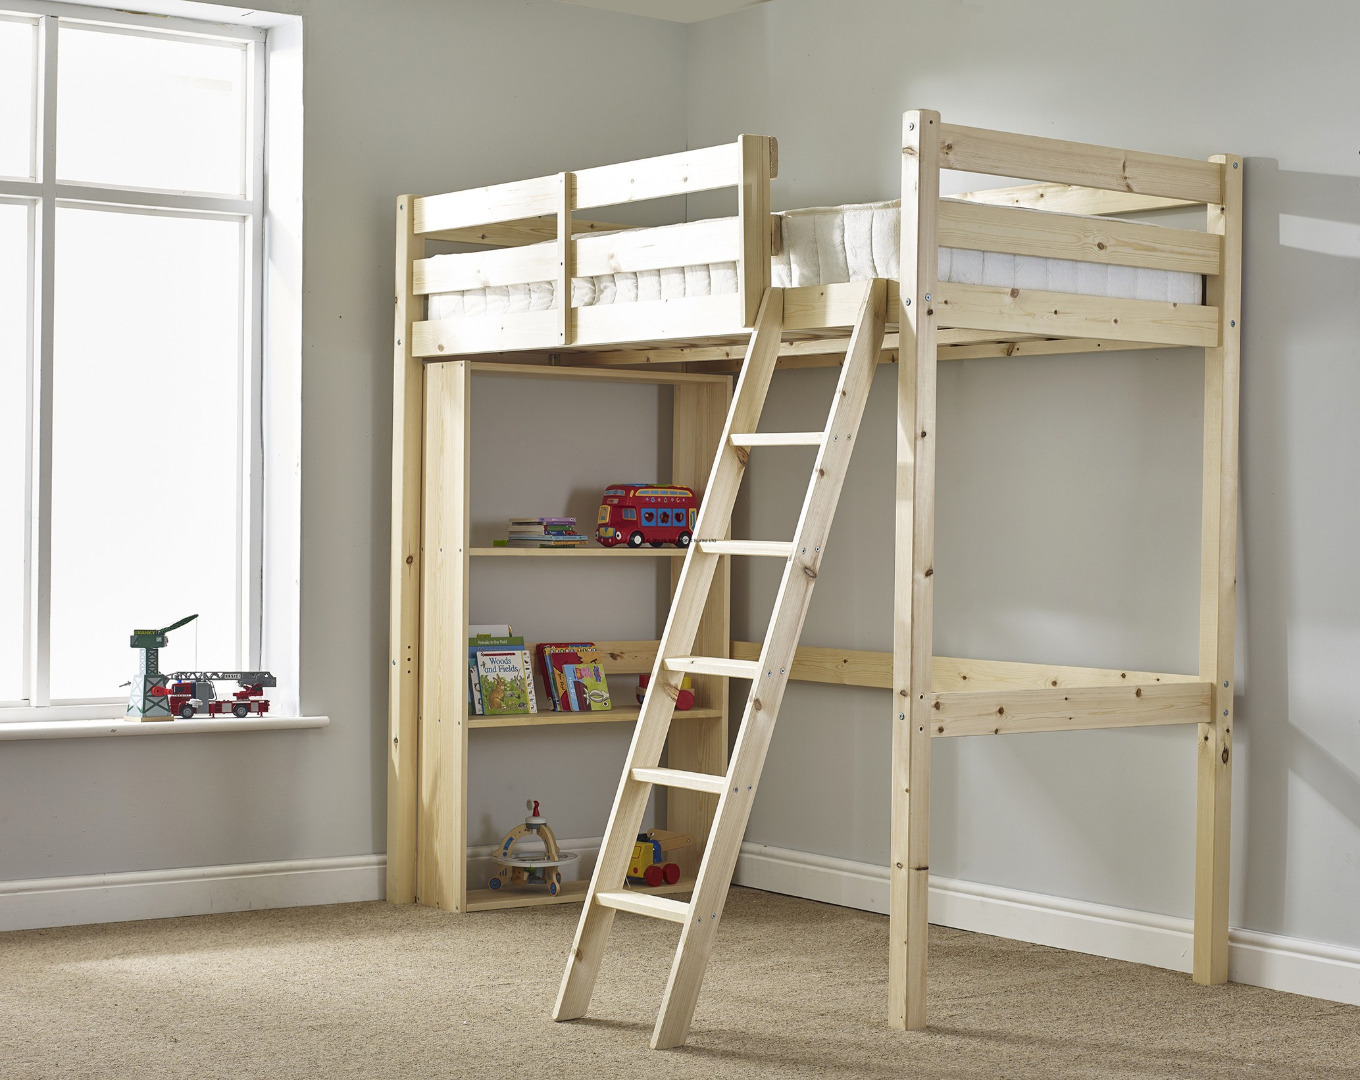 Celeste 3ft Single SHORT LENGTH HIGH SLEEPER Bunk Bed (NO BOOKCASE)